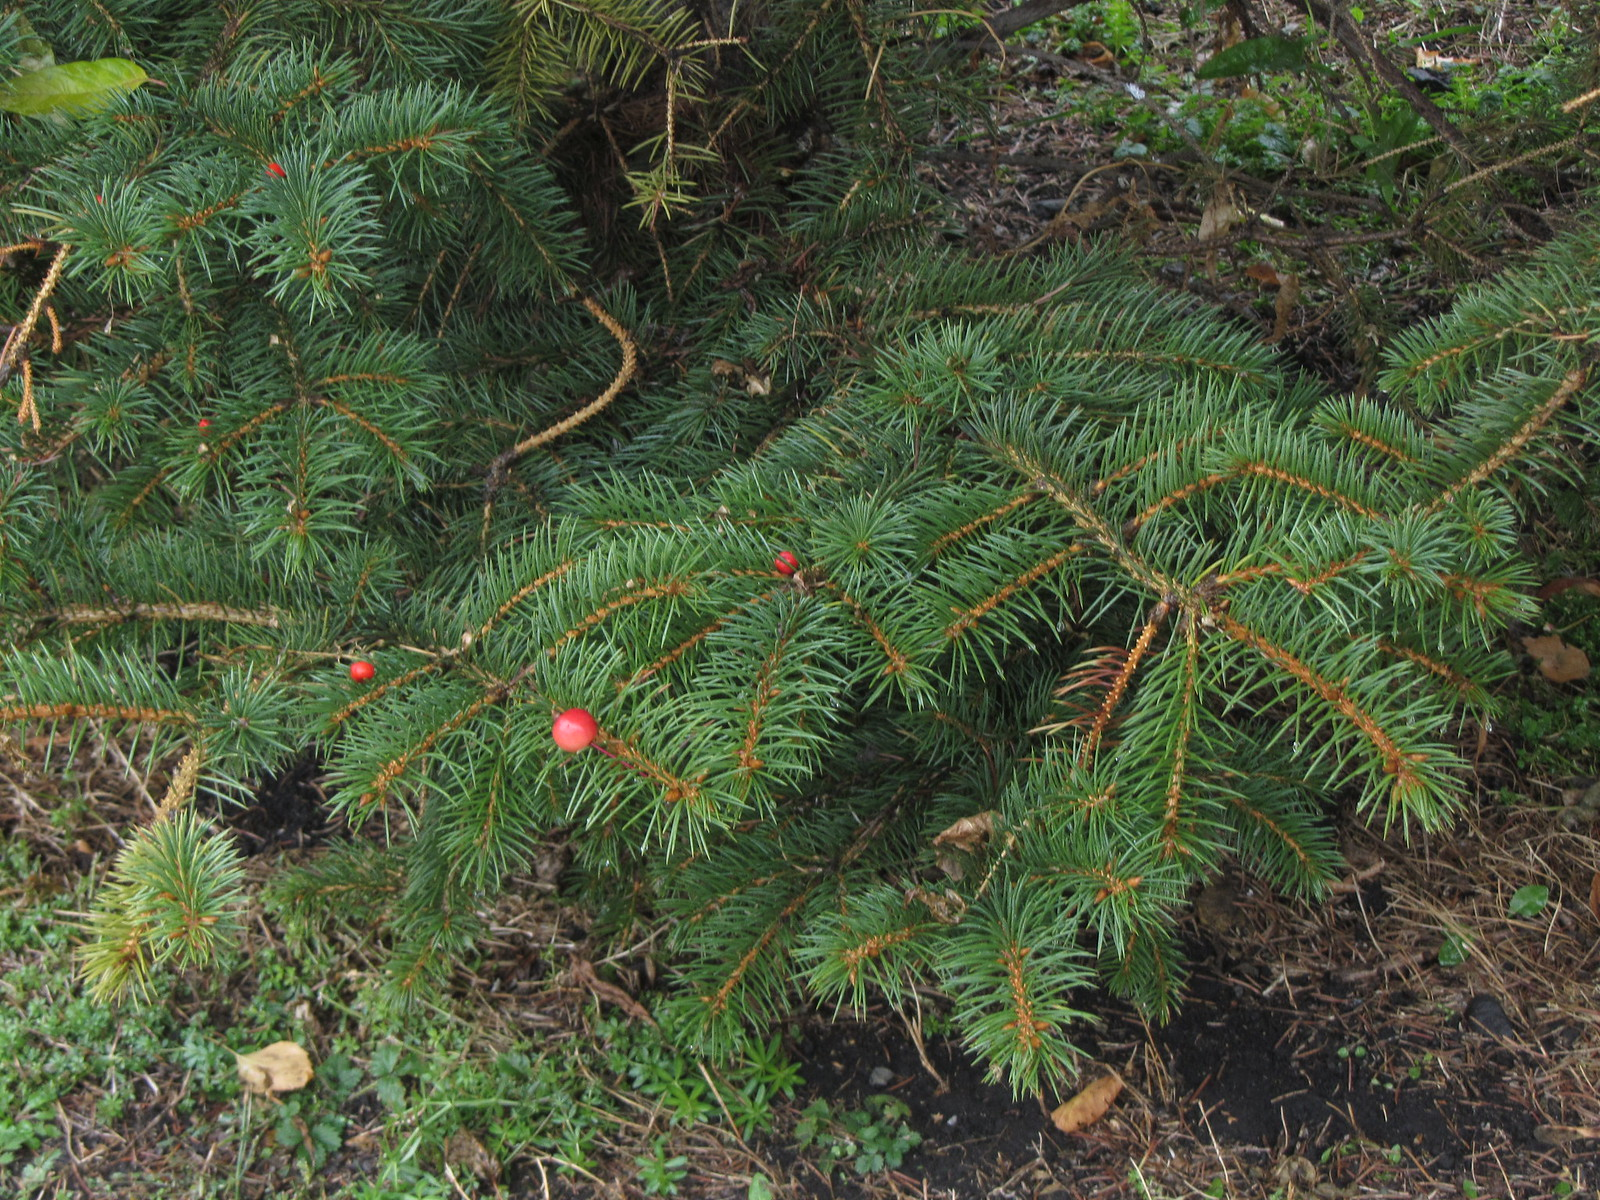 fir branches with berries or small apples on them